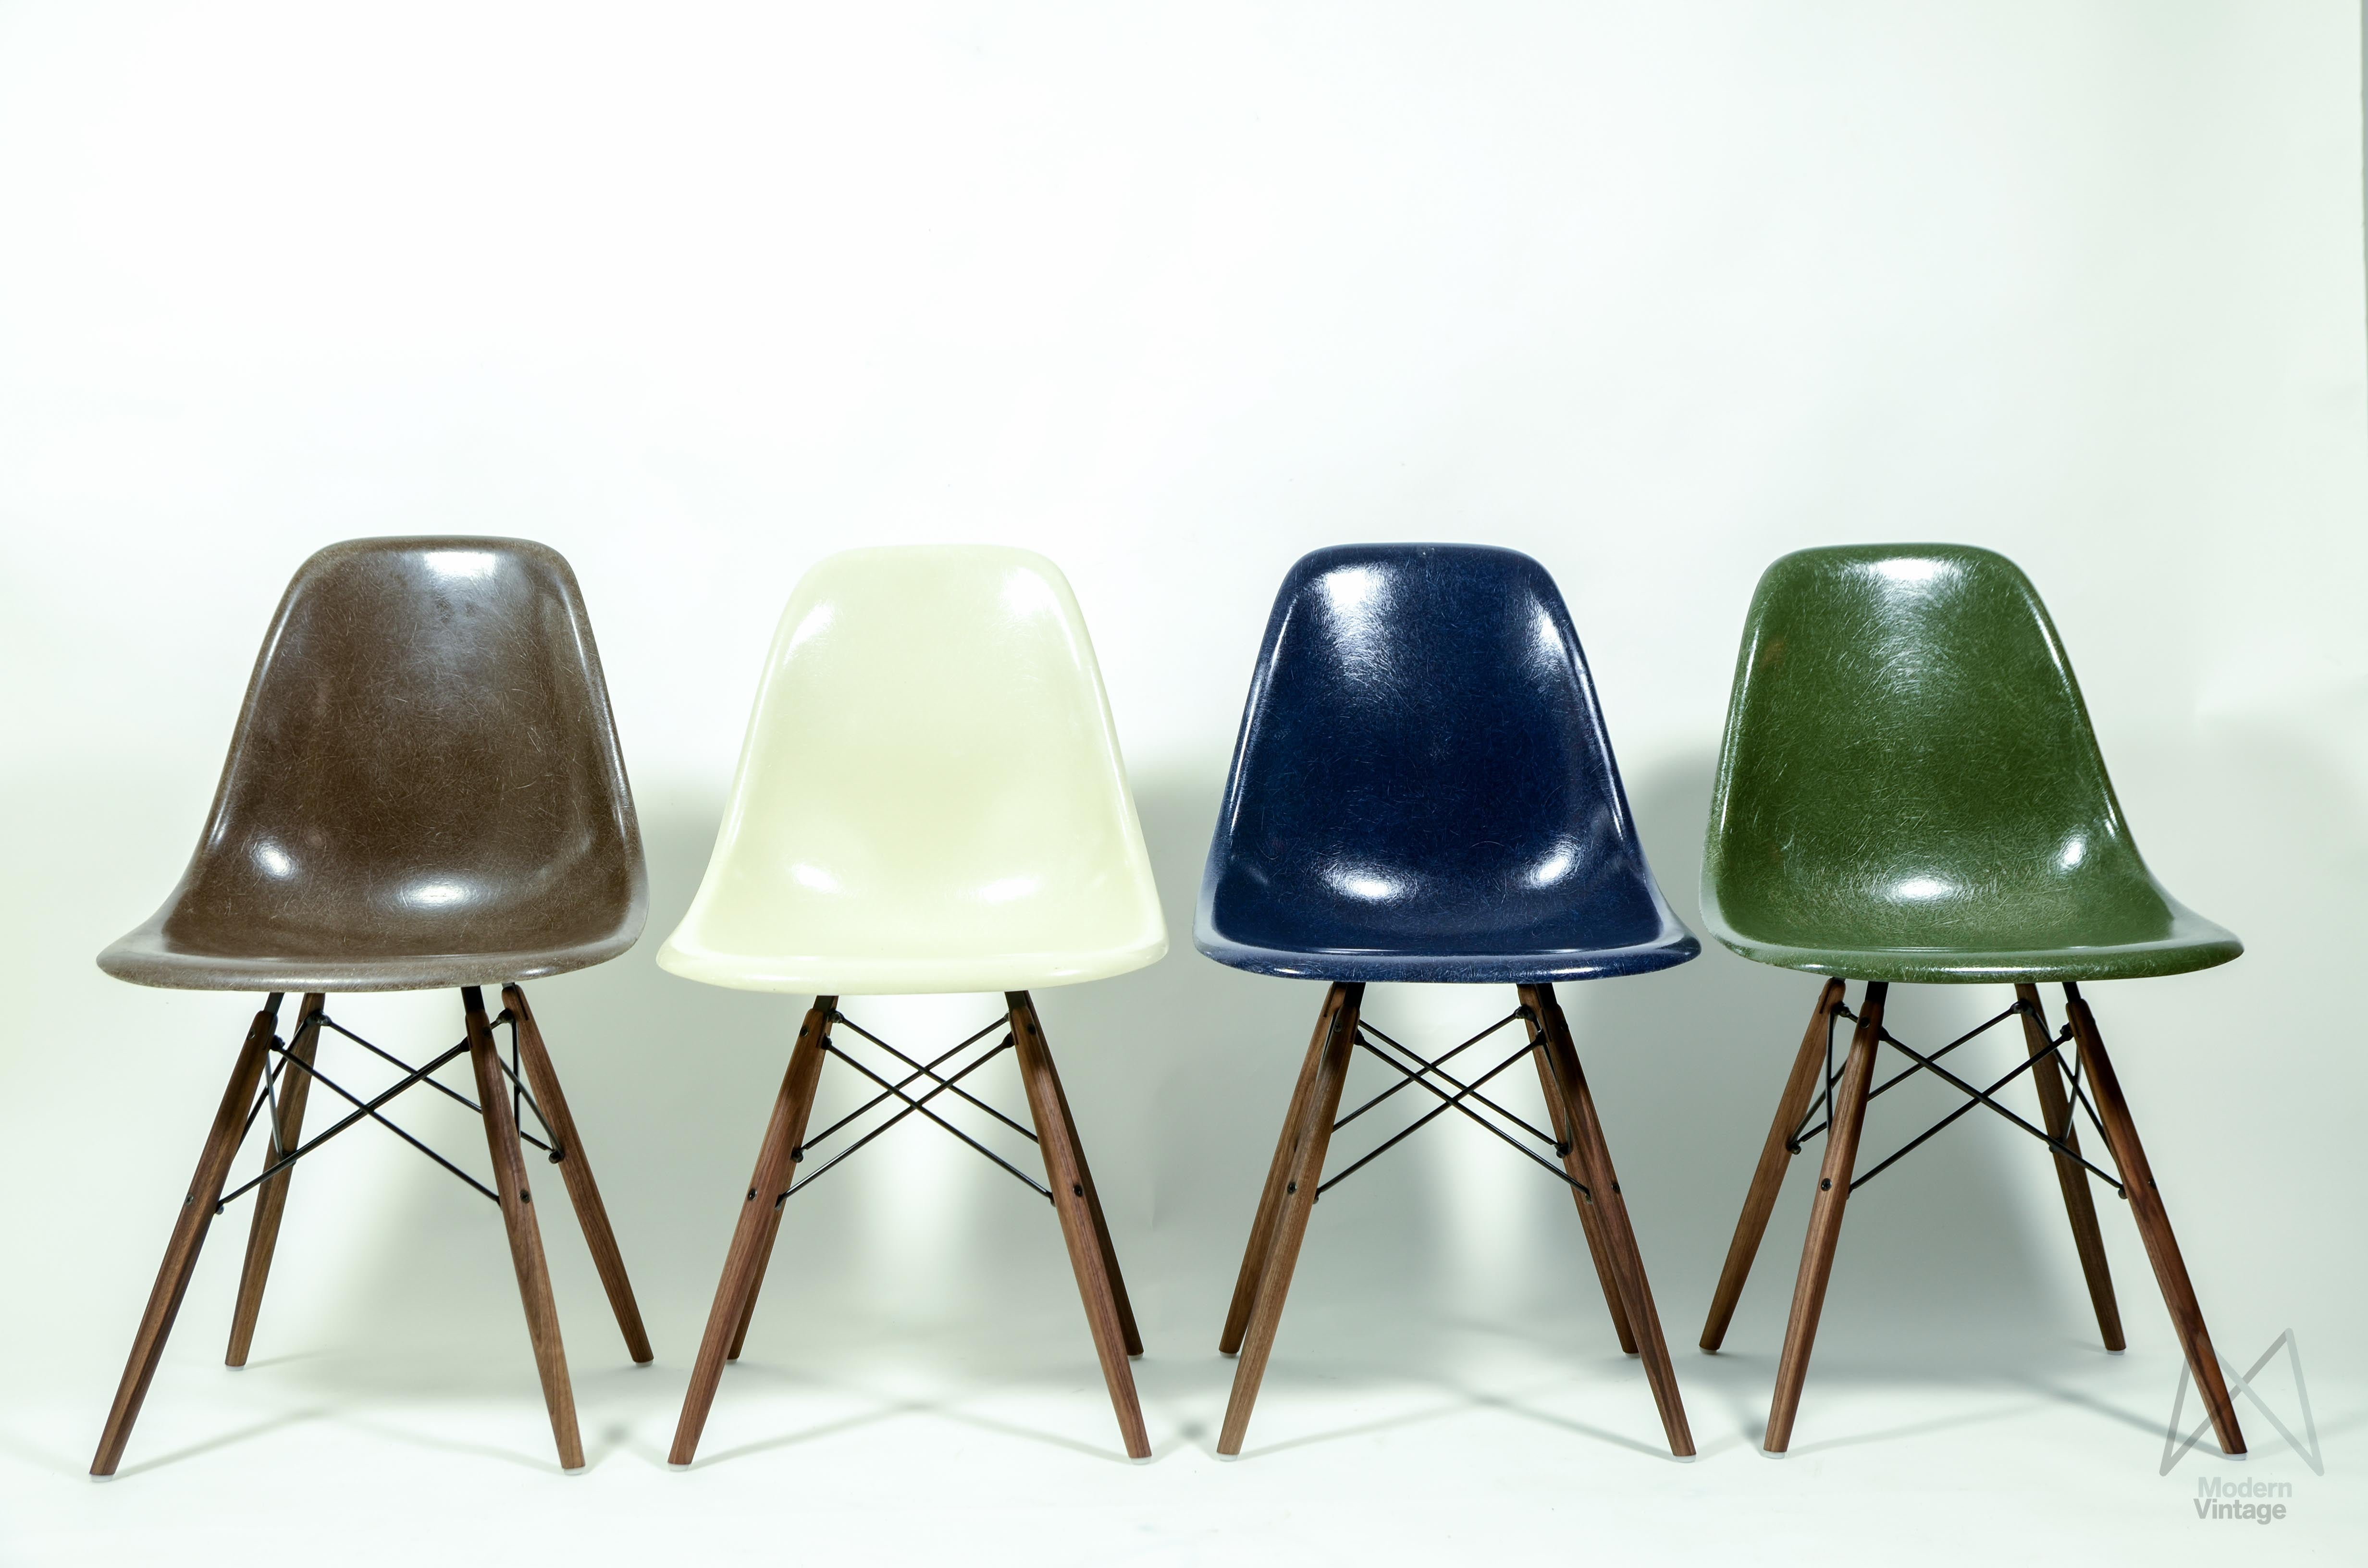 Image of Eames Original Herman Miller Fiberglass DSW Chair Different Colors : old herman miller chairs - Cheerinfomania.Com